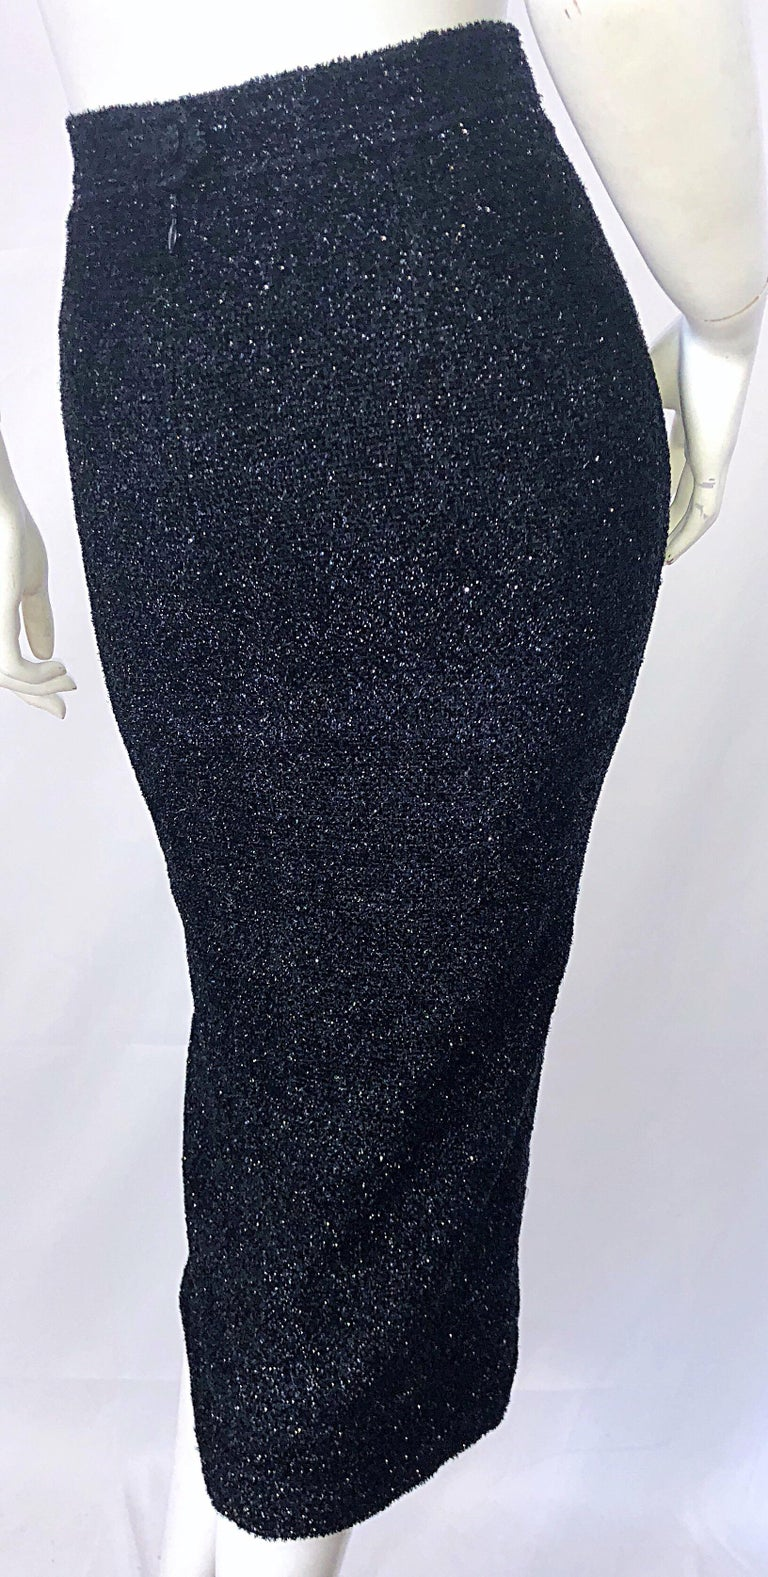 Vintage Christian Lacroix Sz 10 / 12 Black Silk Lurex High Waist 90s Midi Skirt In Excellent Condition For Sale In Chicago, IL